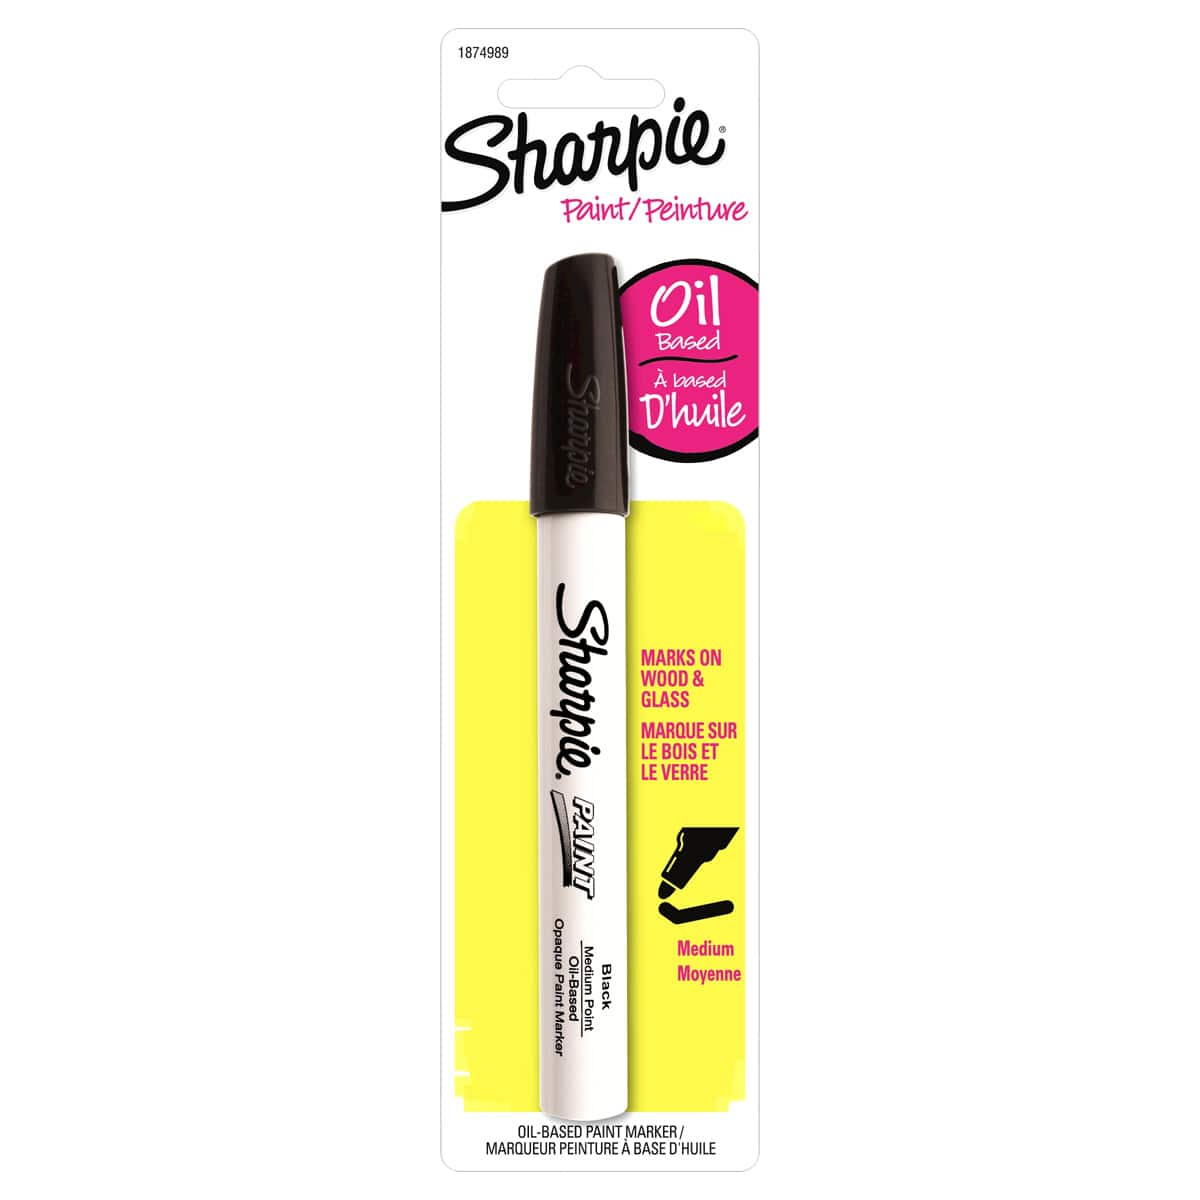 Sharpie Opaque Oil Based Paint Markers Medium Tip White 2pk